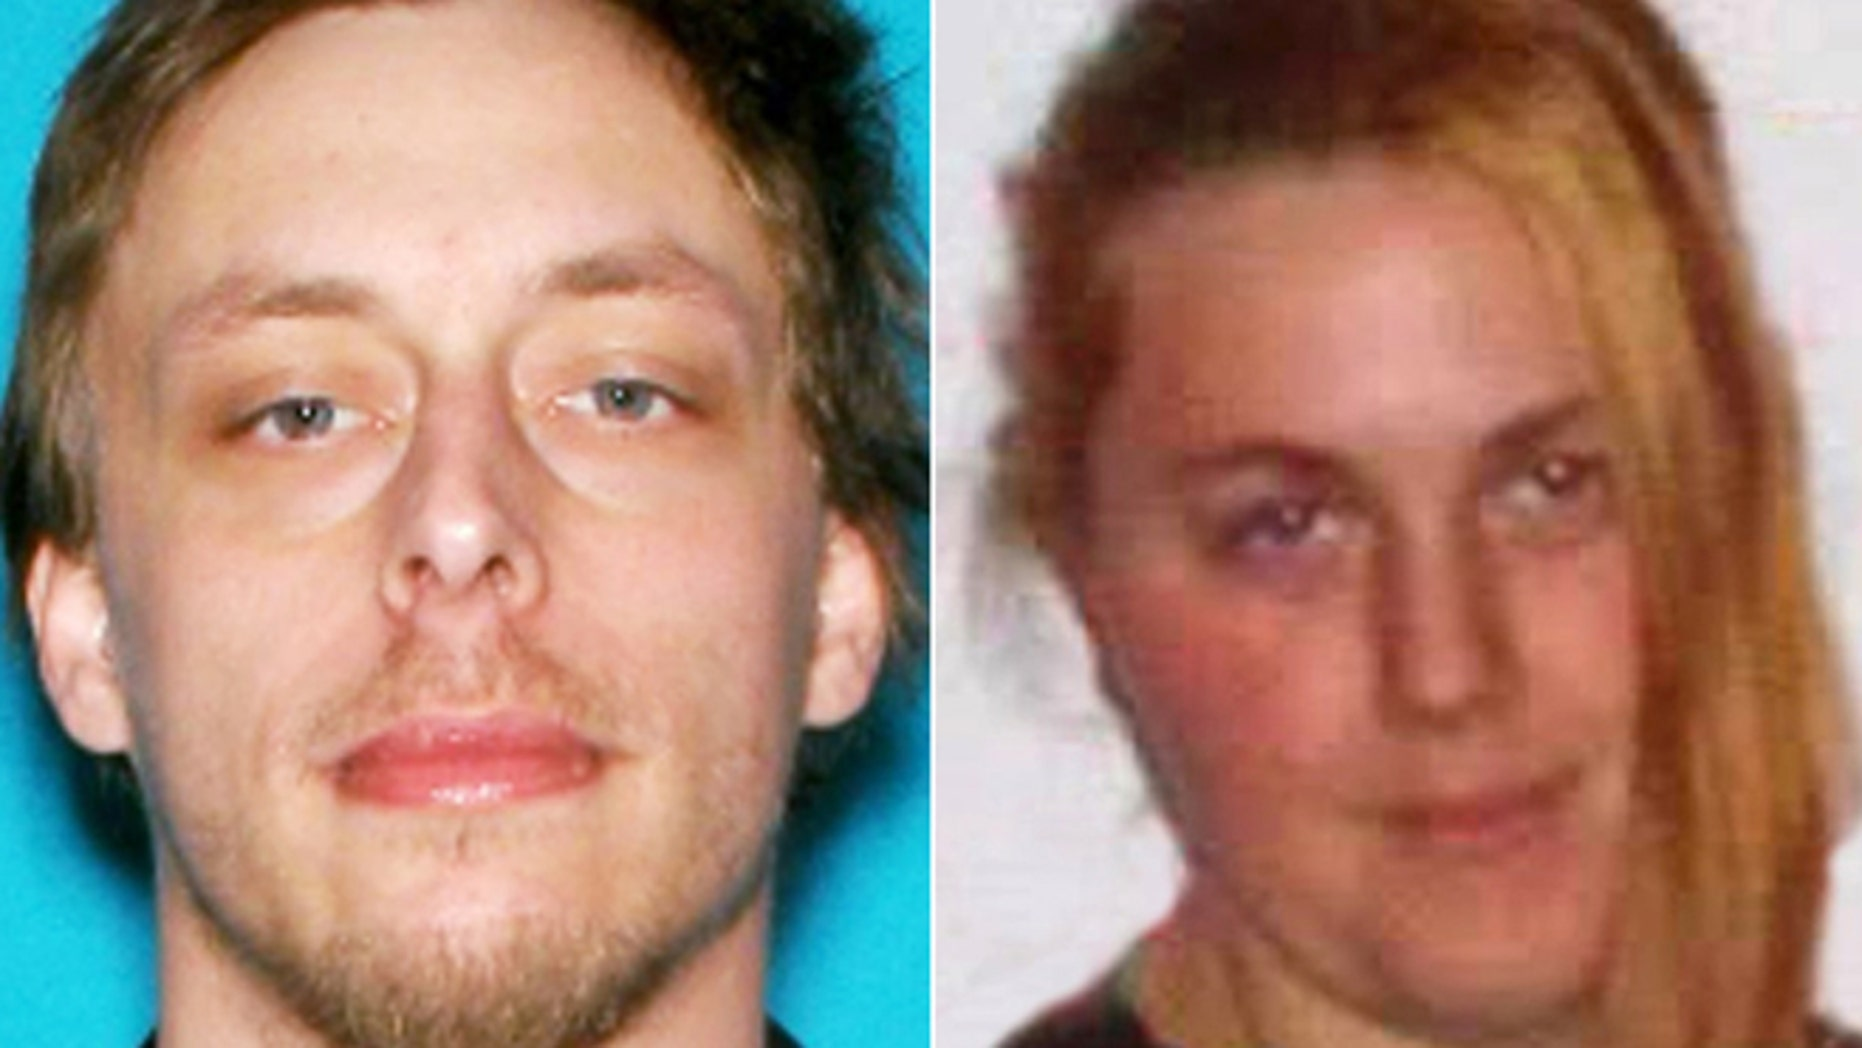 Jerad Miller, left, and his wife, Amanda Miller ambushed two Las Vegas police officers and killed a Walmart shopper before they were killed earlier this month in a back corner of the store were well-armed with handguns, a shotgun and ammunition including armor-piercing bullets, police say.